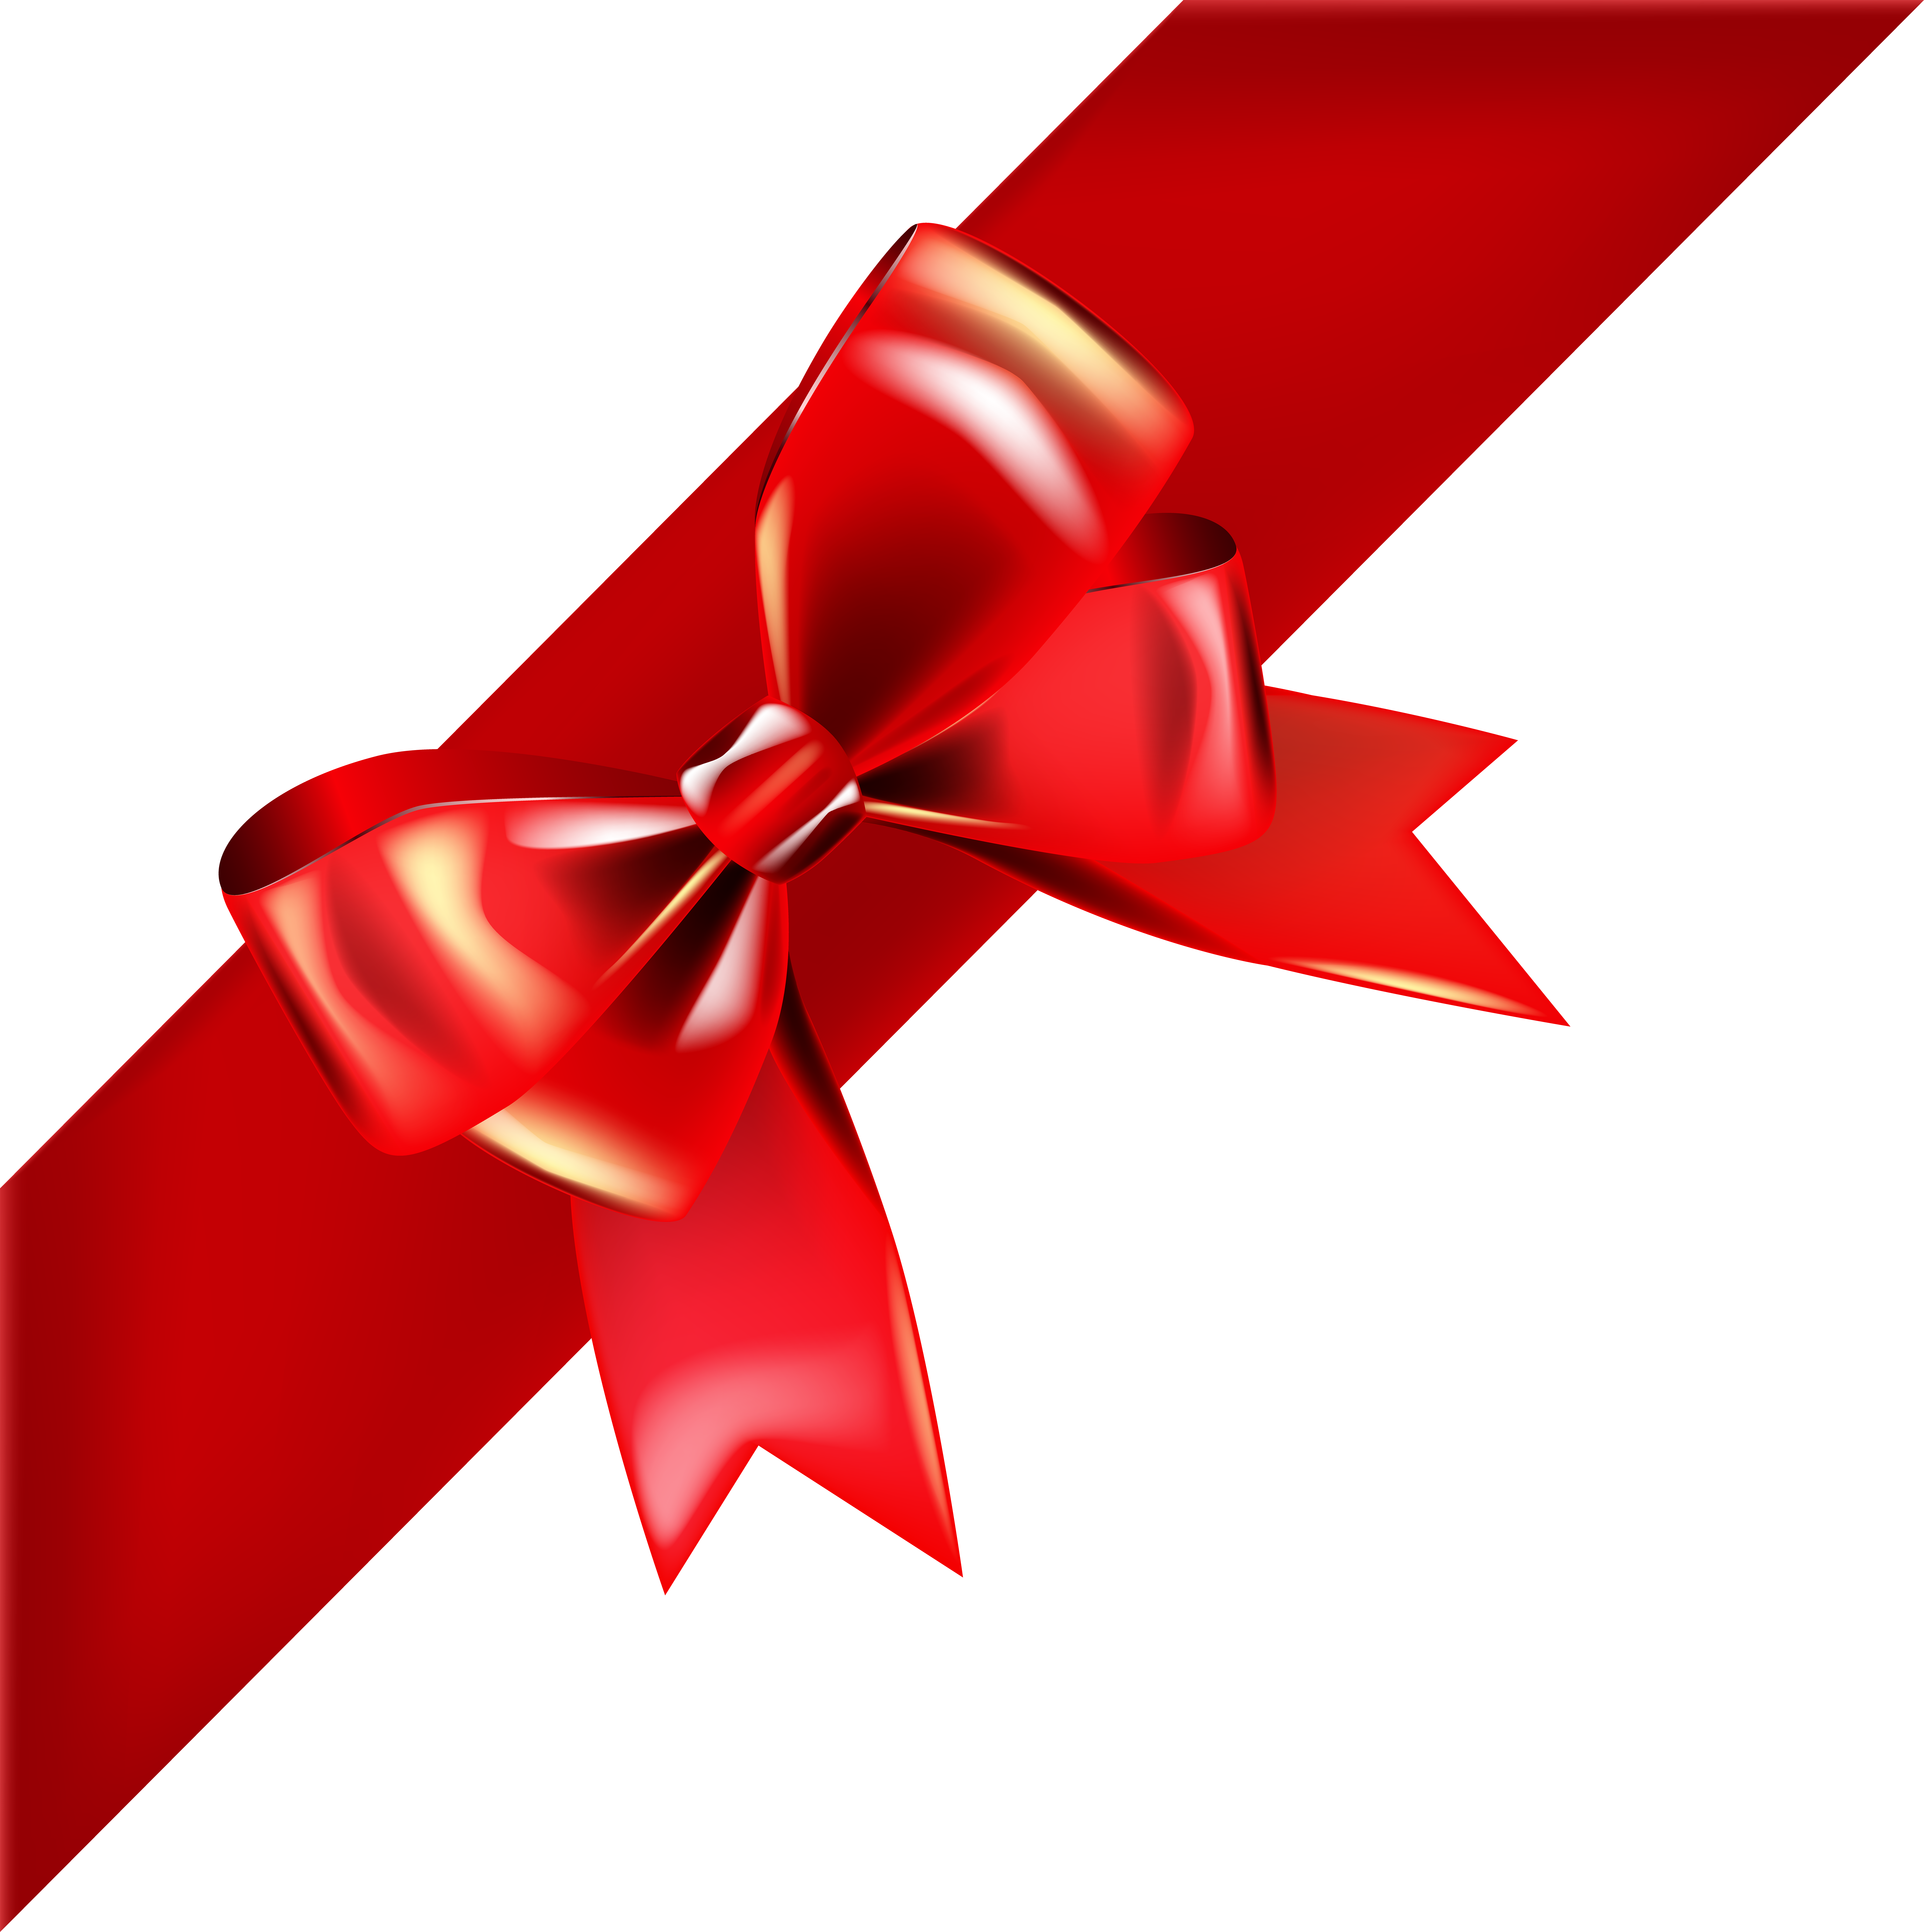 7967x8000 Bow Red Deco Png Clip Artu200b Gallery Yopriceville